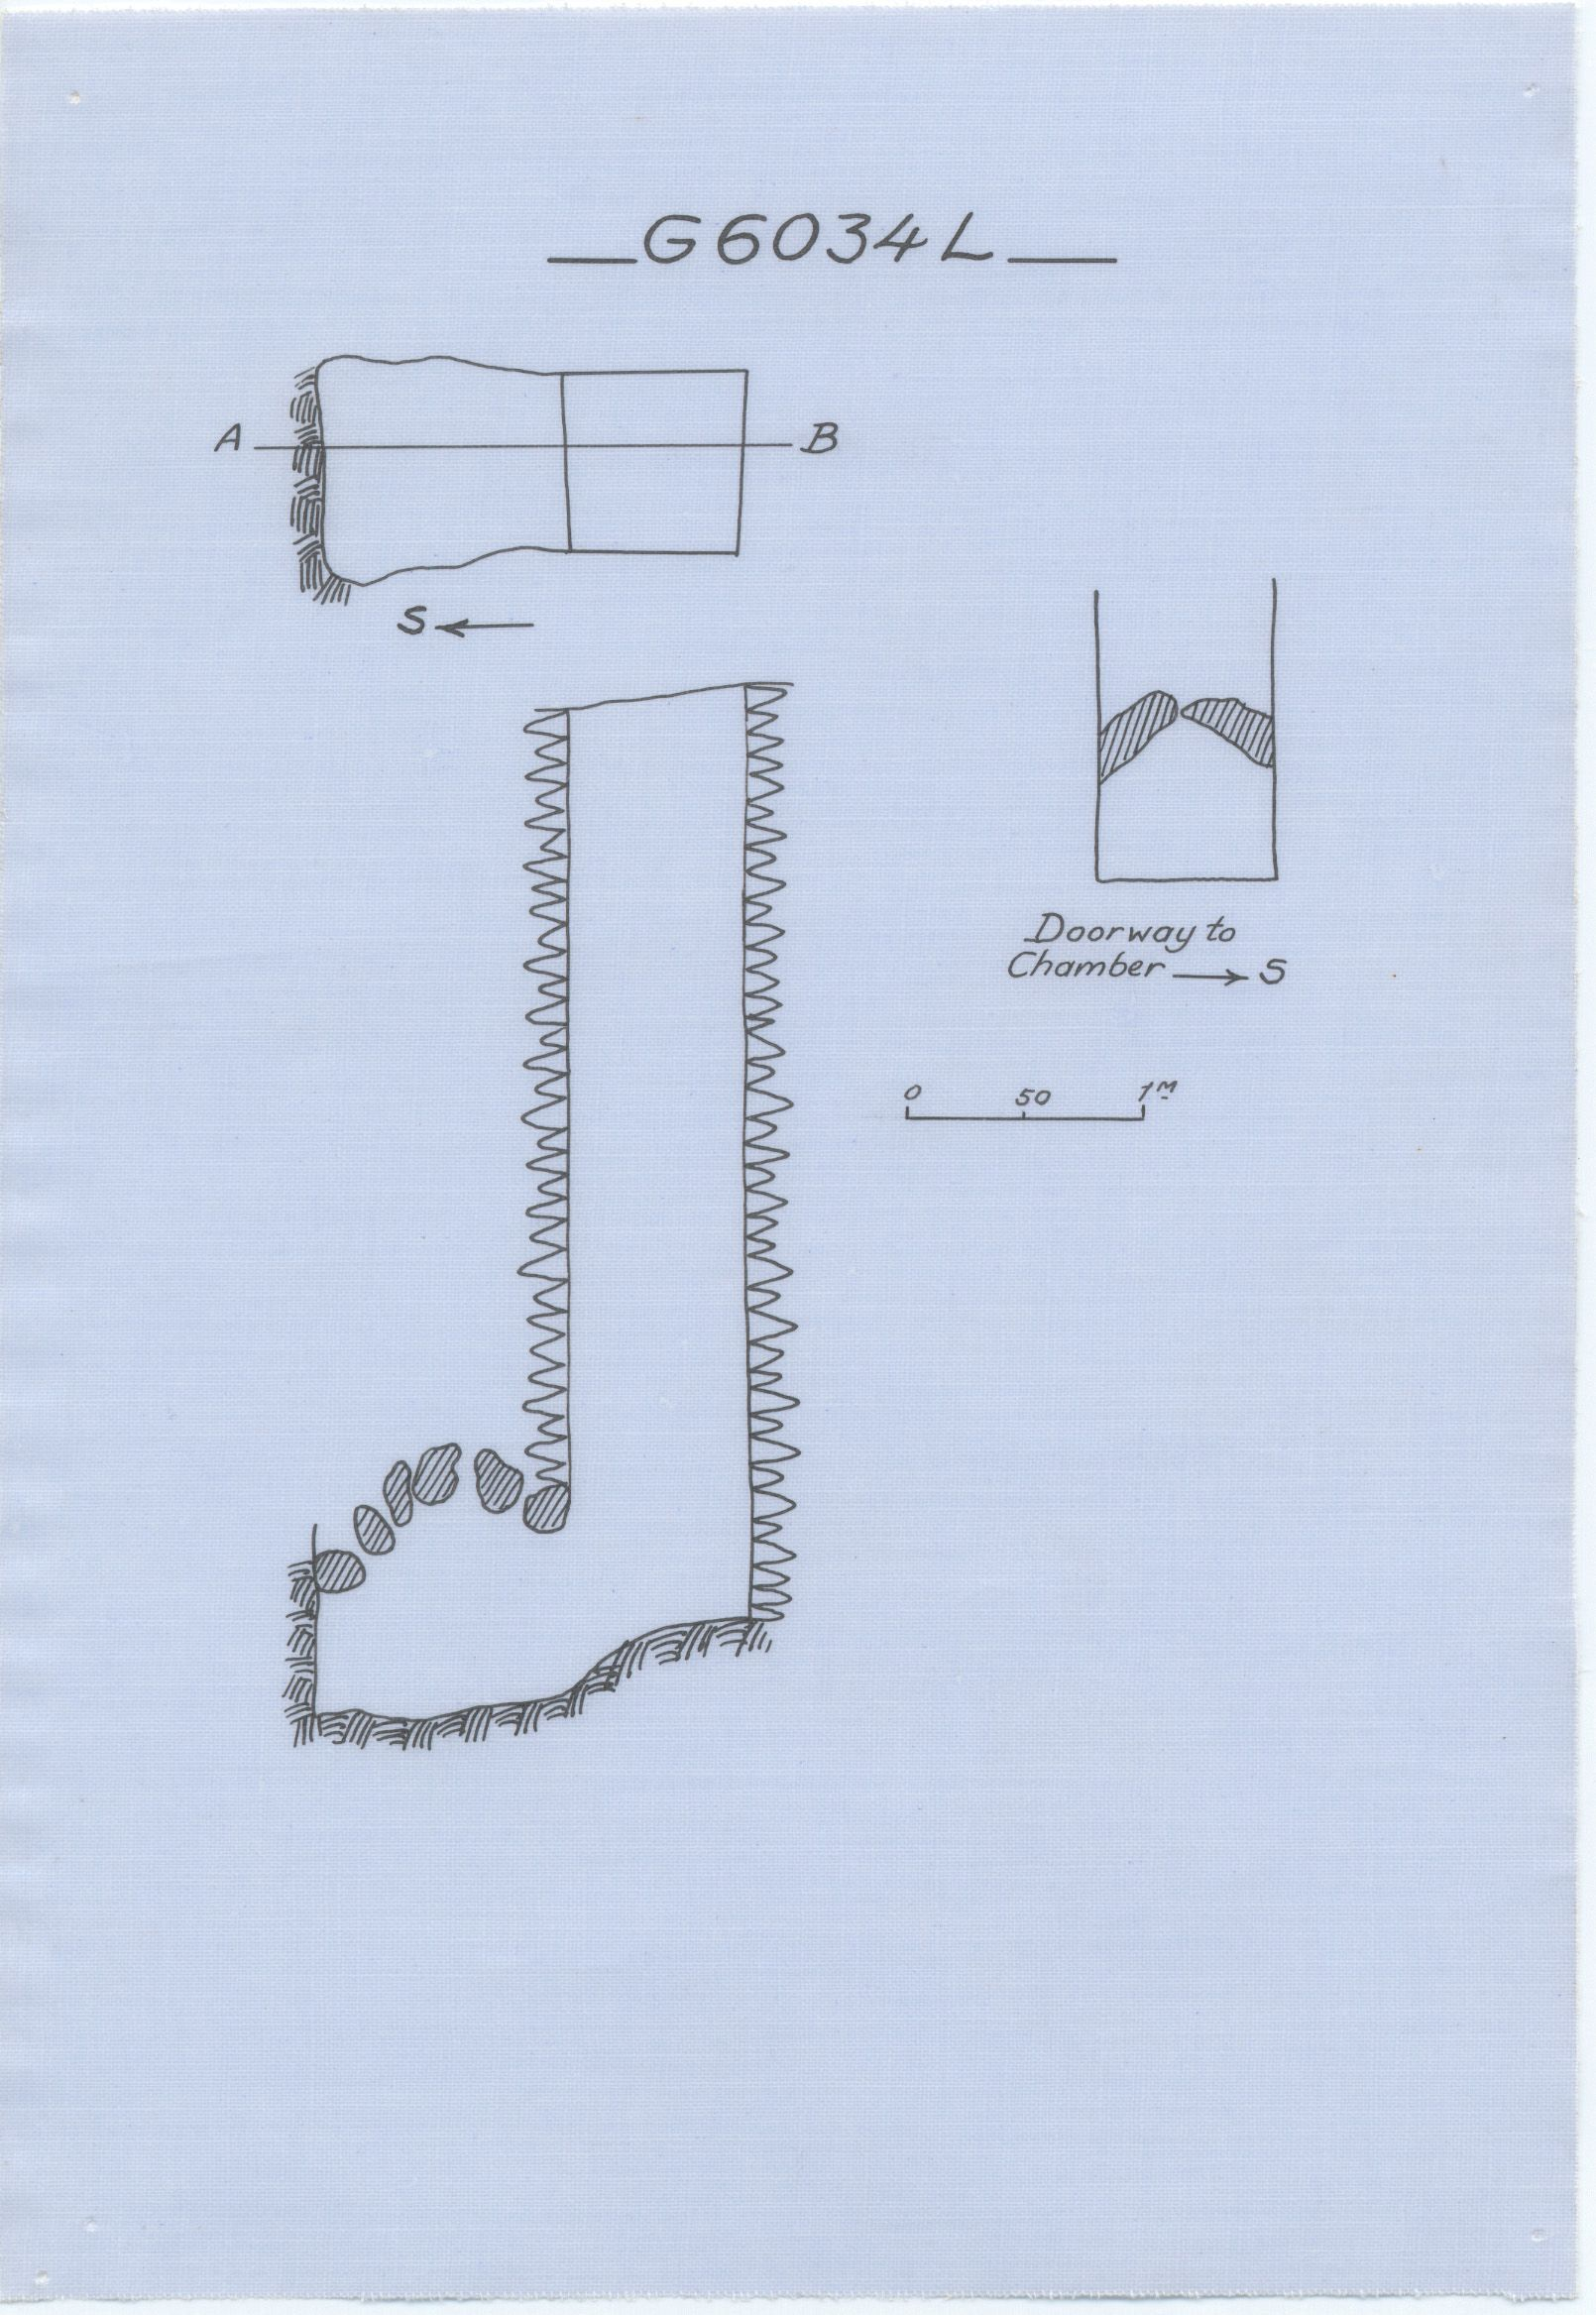 Maps and plans: G 6034, Shaft L